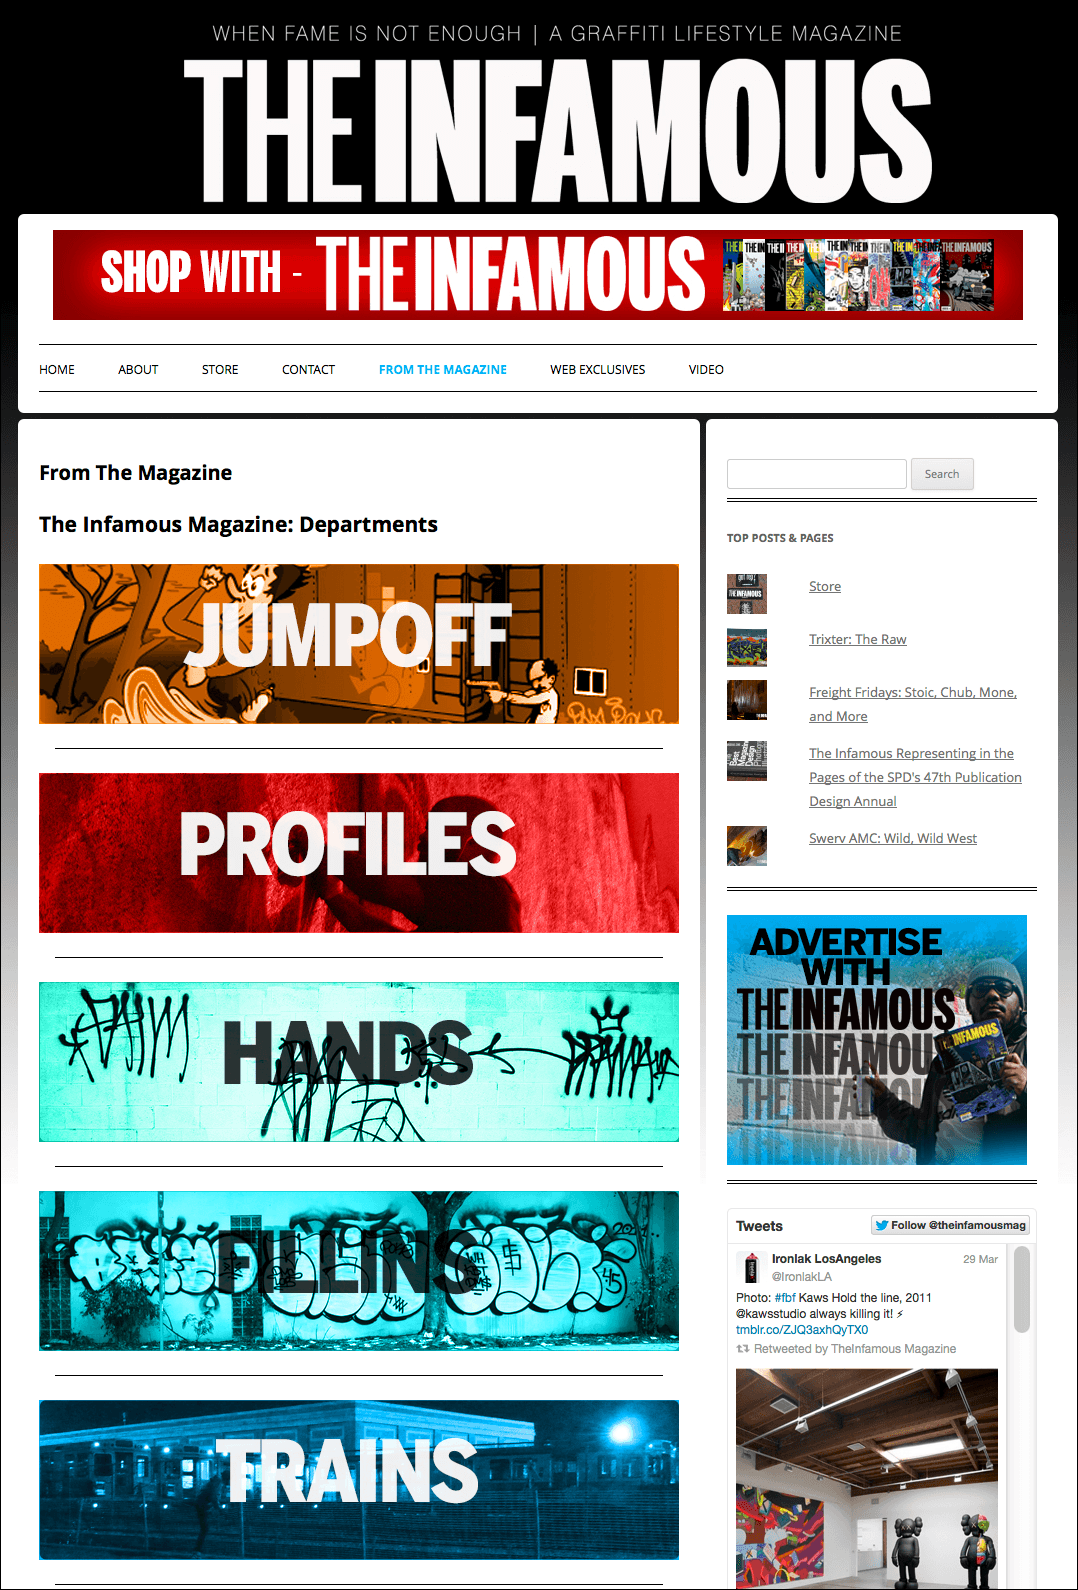 Screenshots and custom PHP code from the WordPress site I created for The Infamous Magazine.